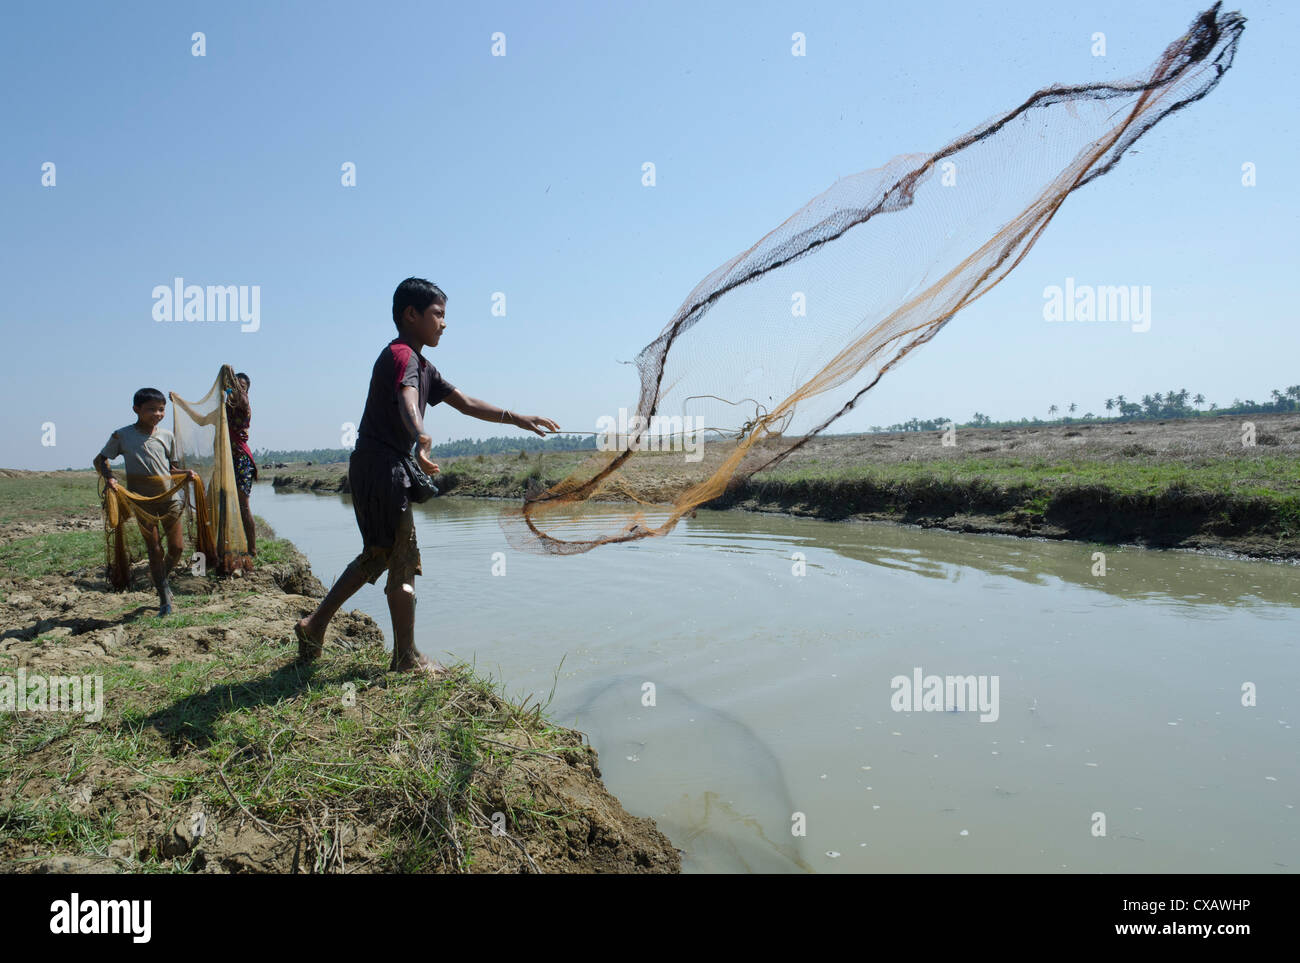 Youngsters fishing with net in waterway, Irrawaddy Delta, Myanmar (Burma), Asia - Stock Image